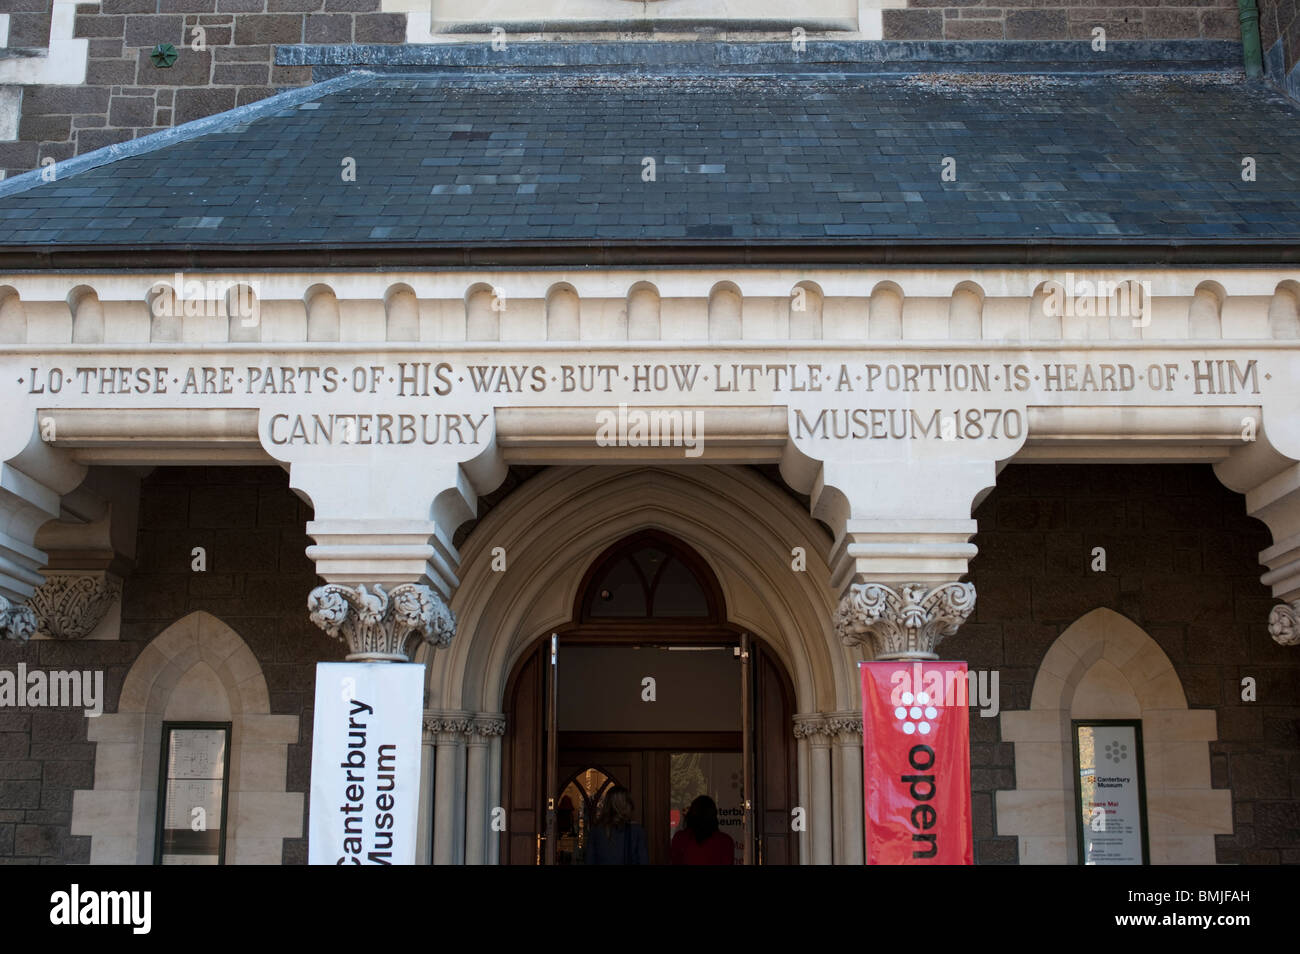 Excerpt from the scriptures above the entrance to Christchurch Museum, New Zealand - Stock Image